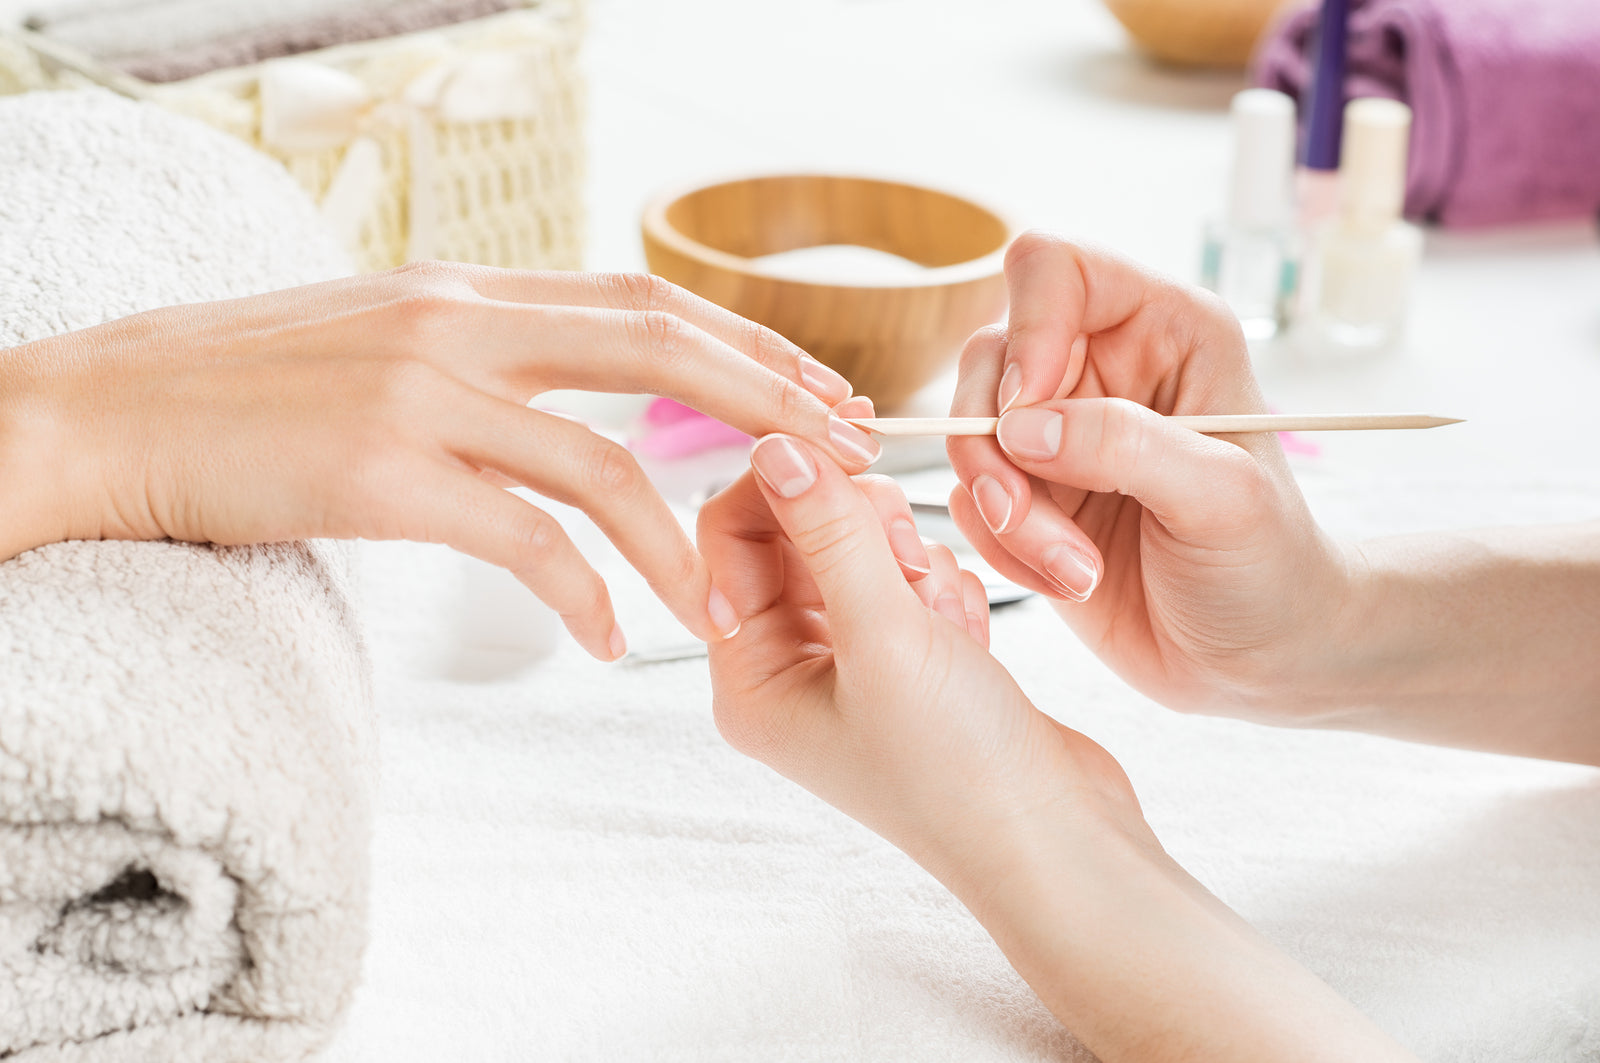 How To Strengthen Your Nails After Acrylic